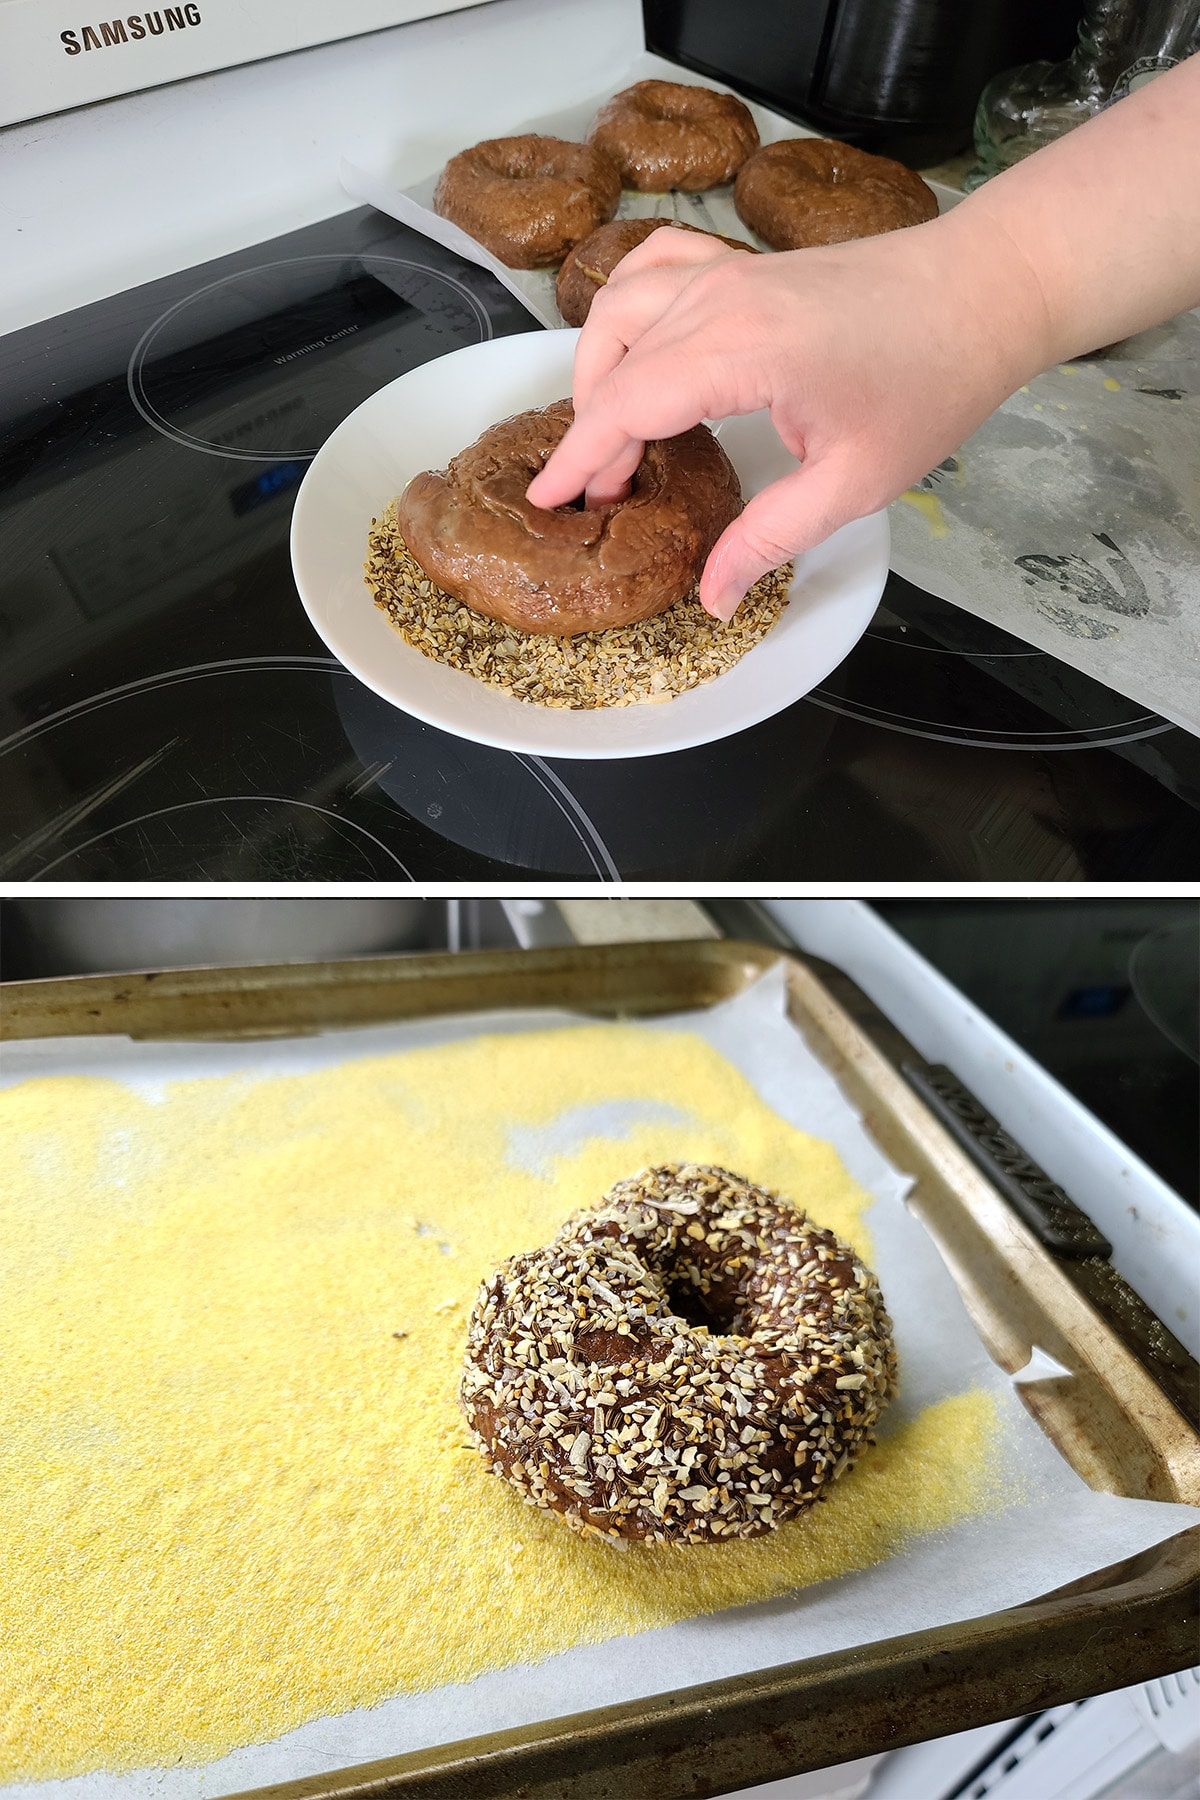 A two part image showing a round of bagel dough being  dipped in the topping, then placed on the baking sheet.